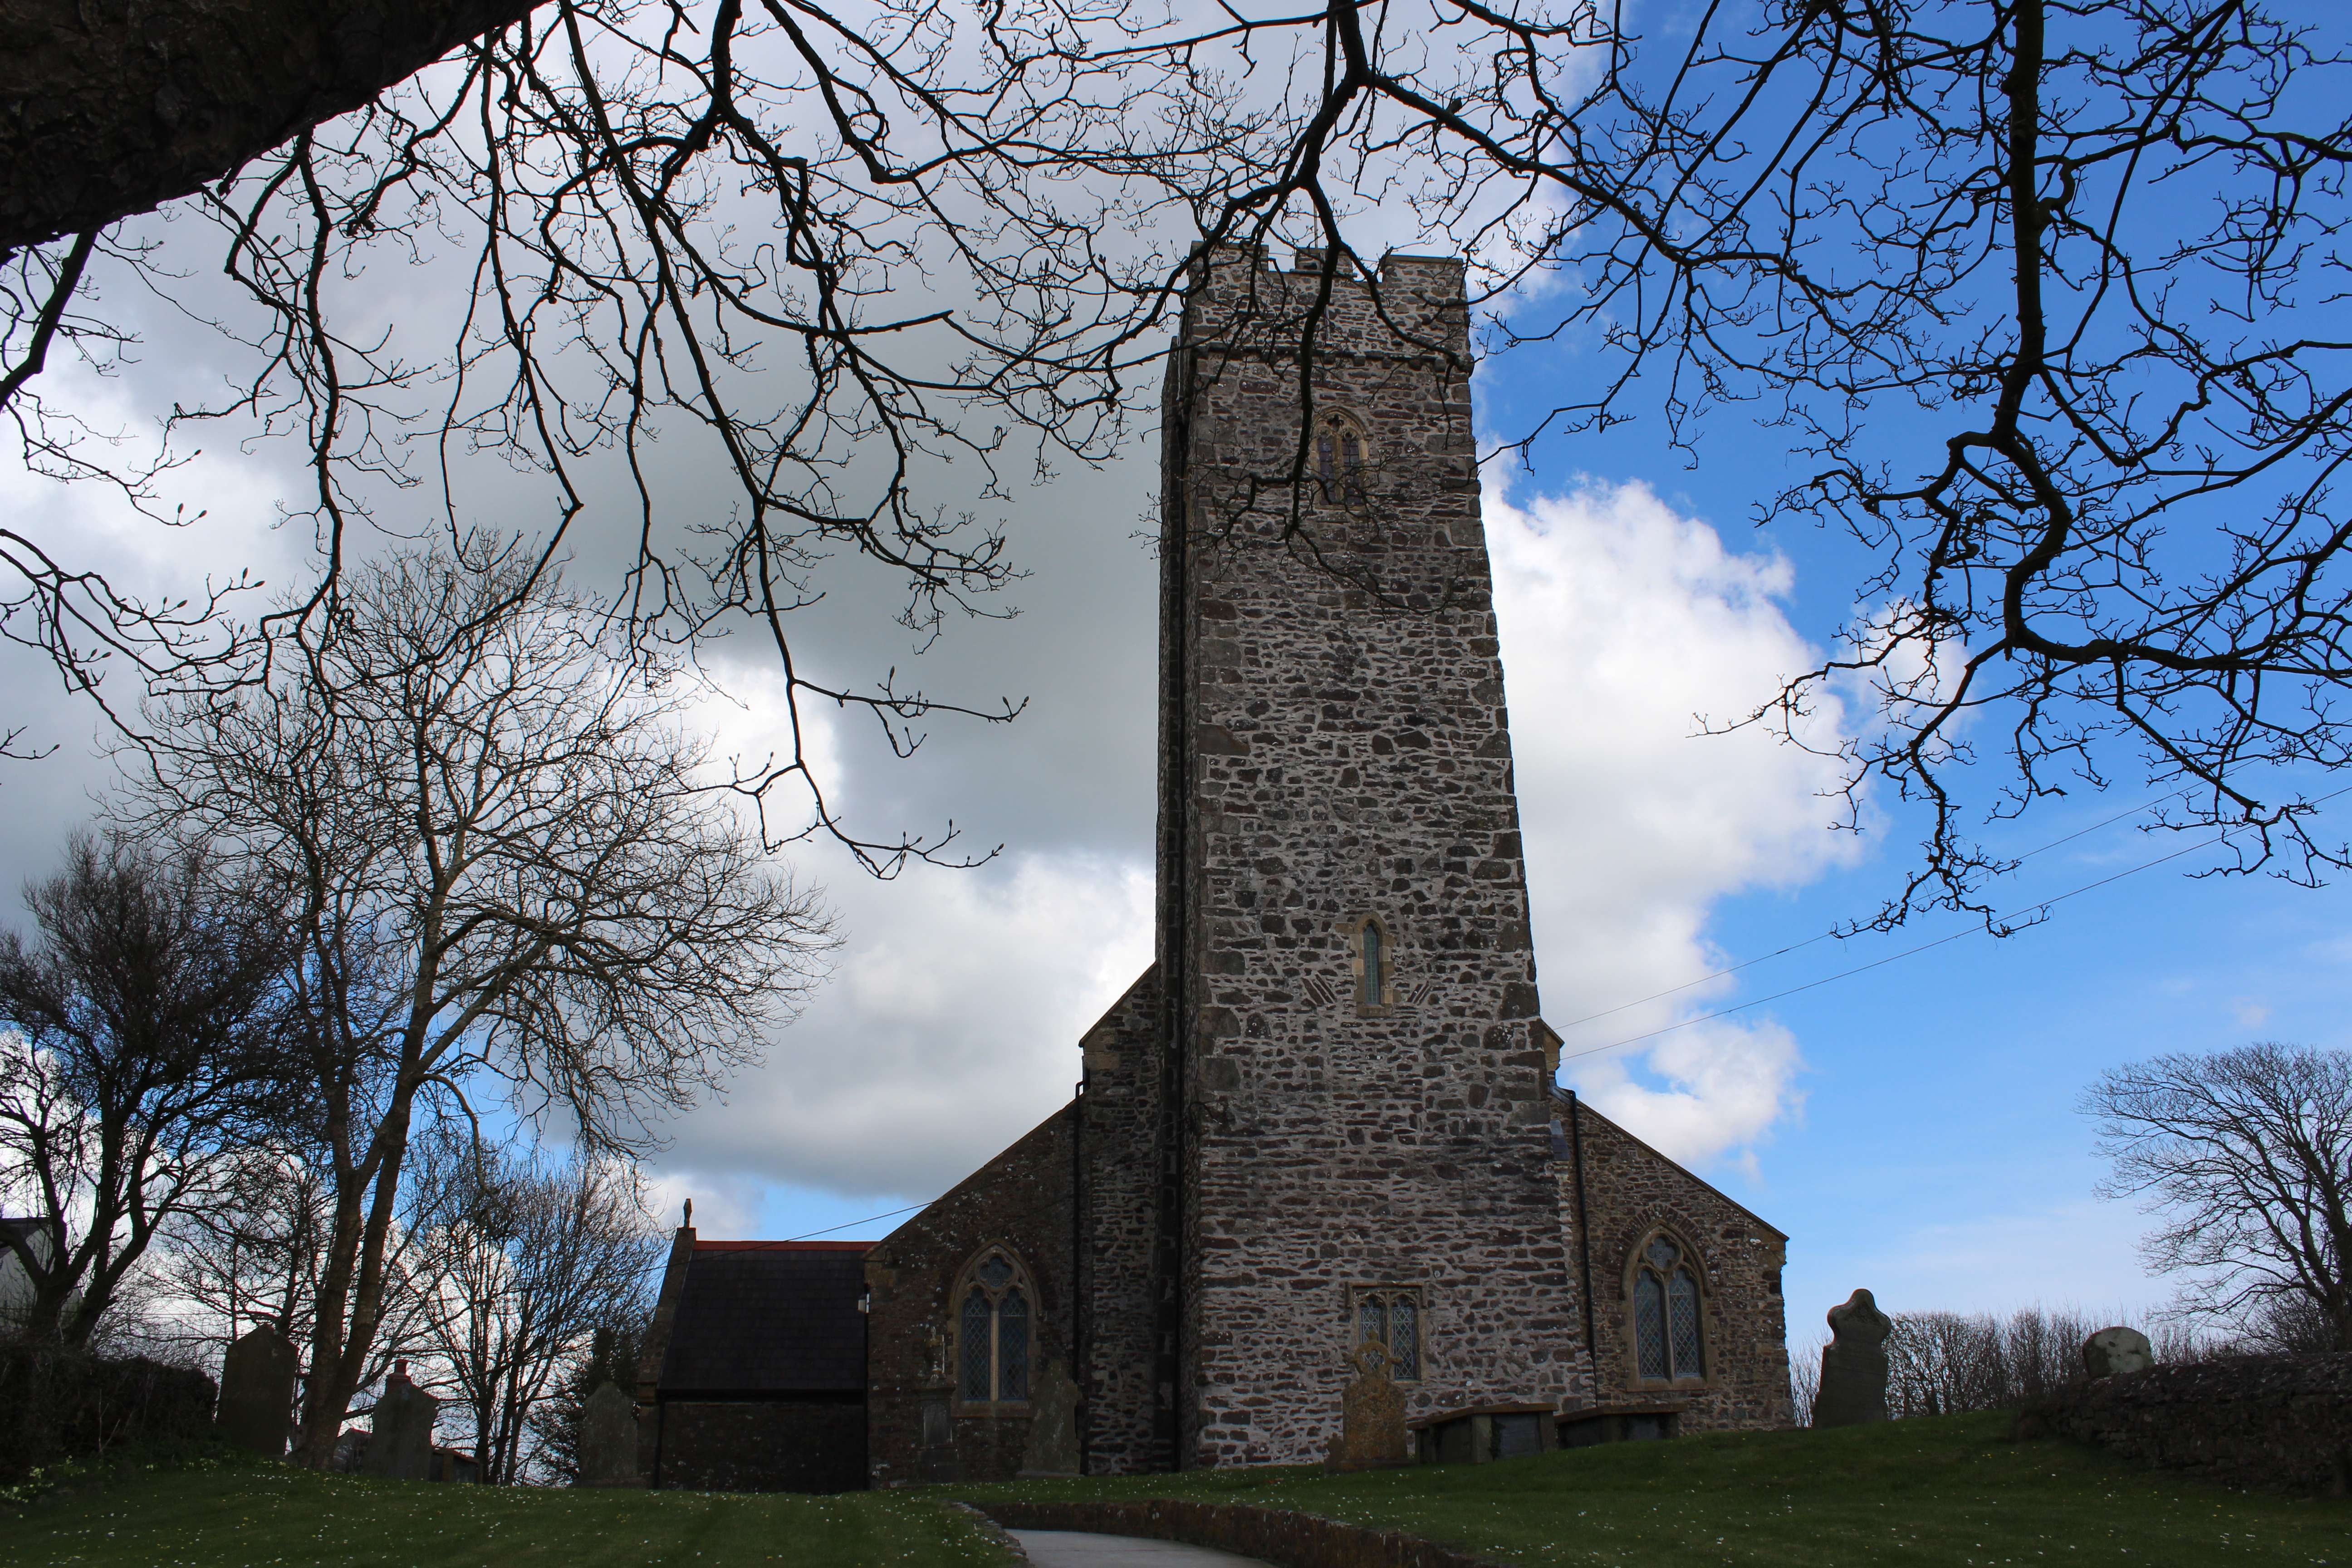 St Cewydd's dominates the village of Steynton, on the outskirts of Milford Haven